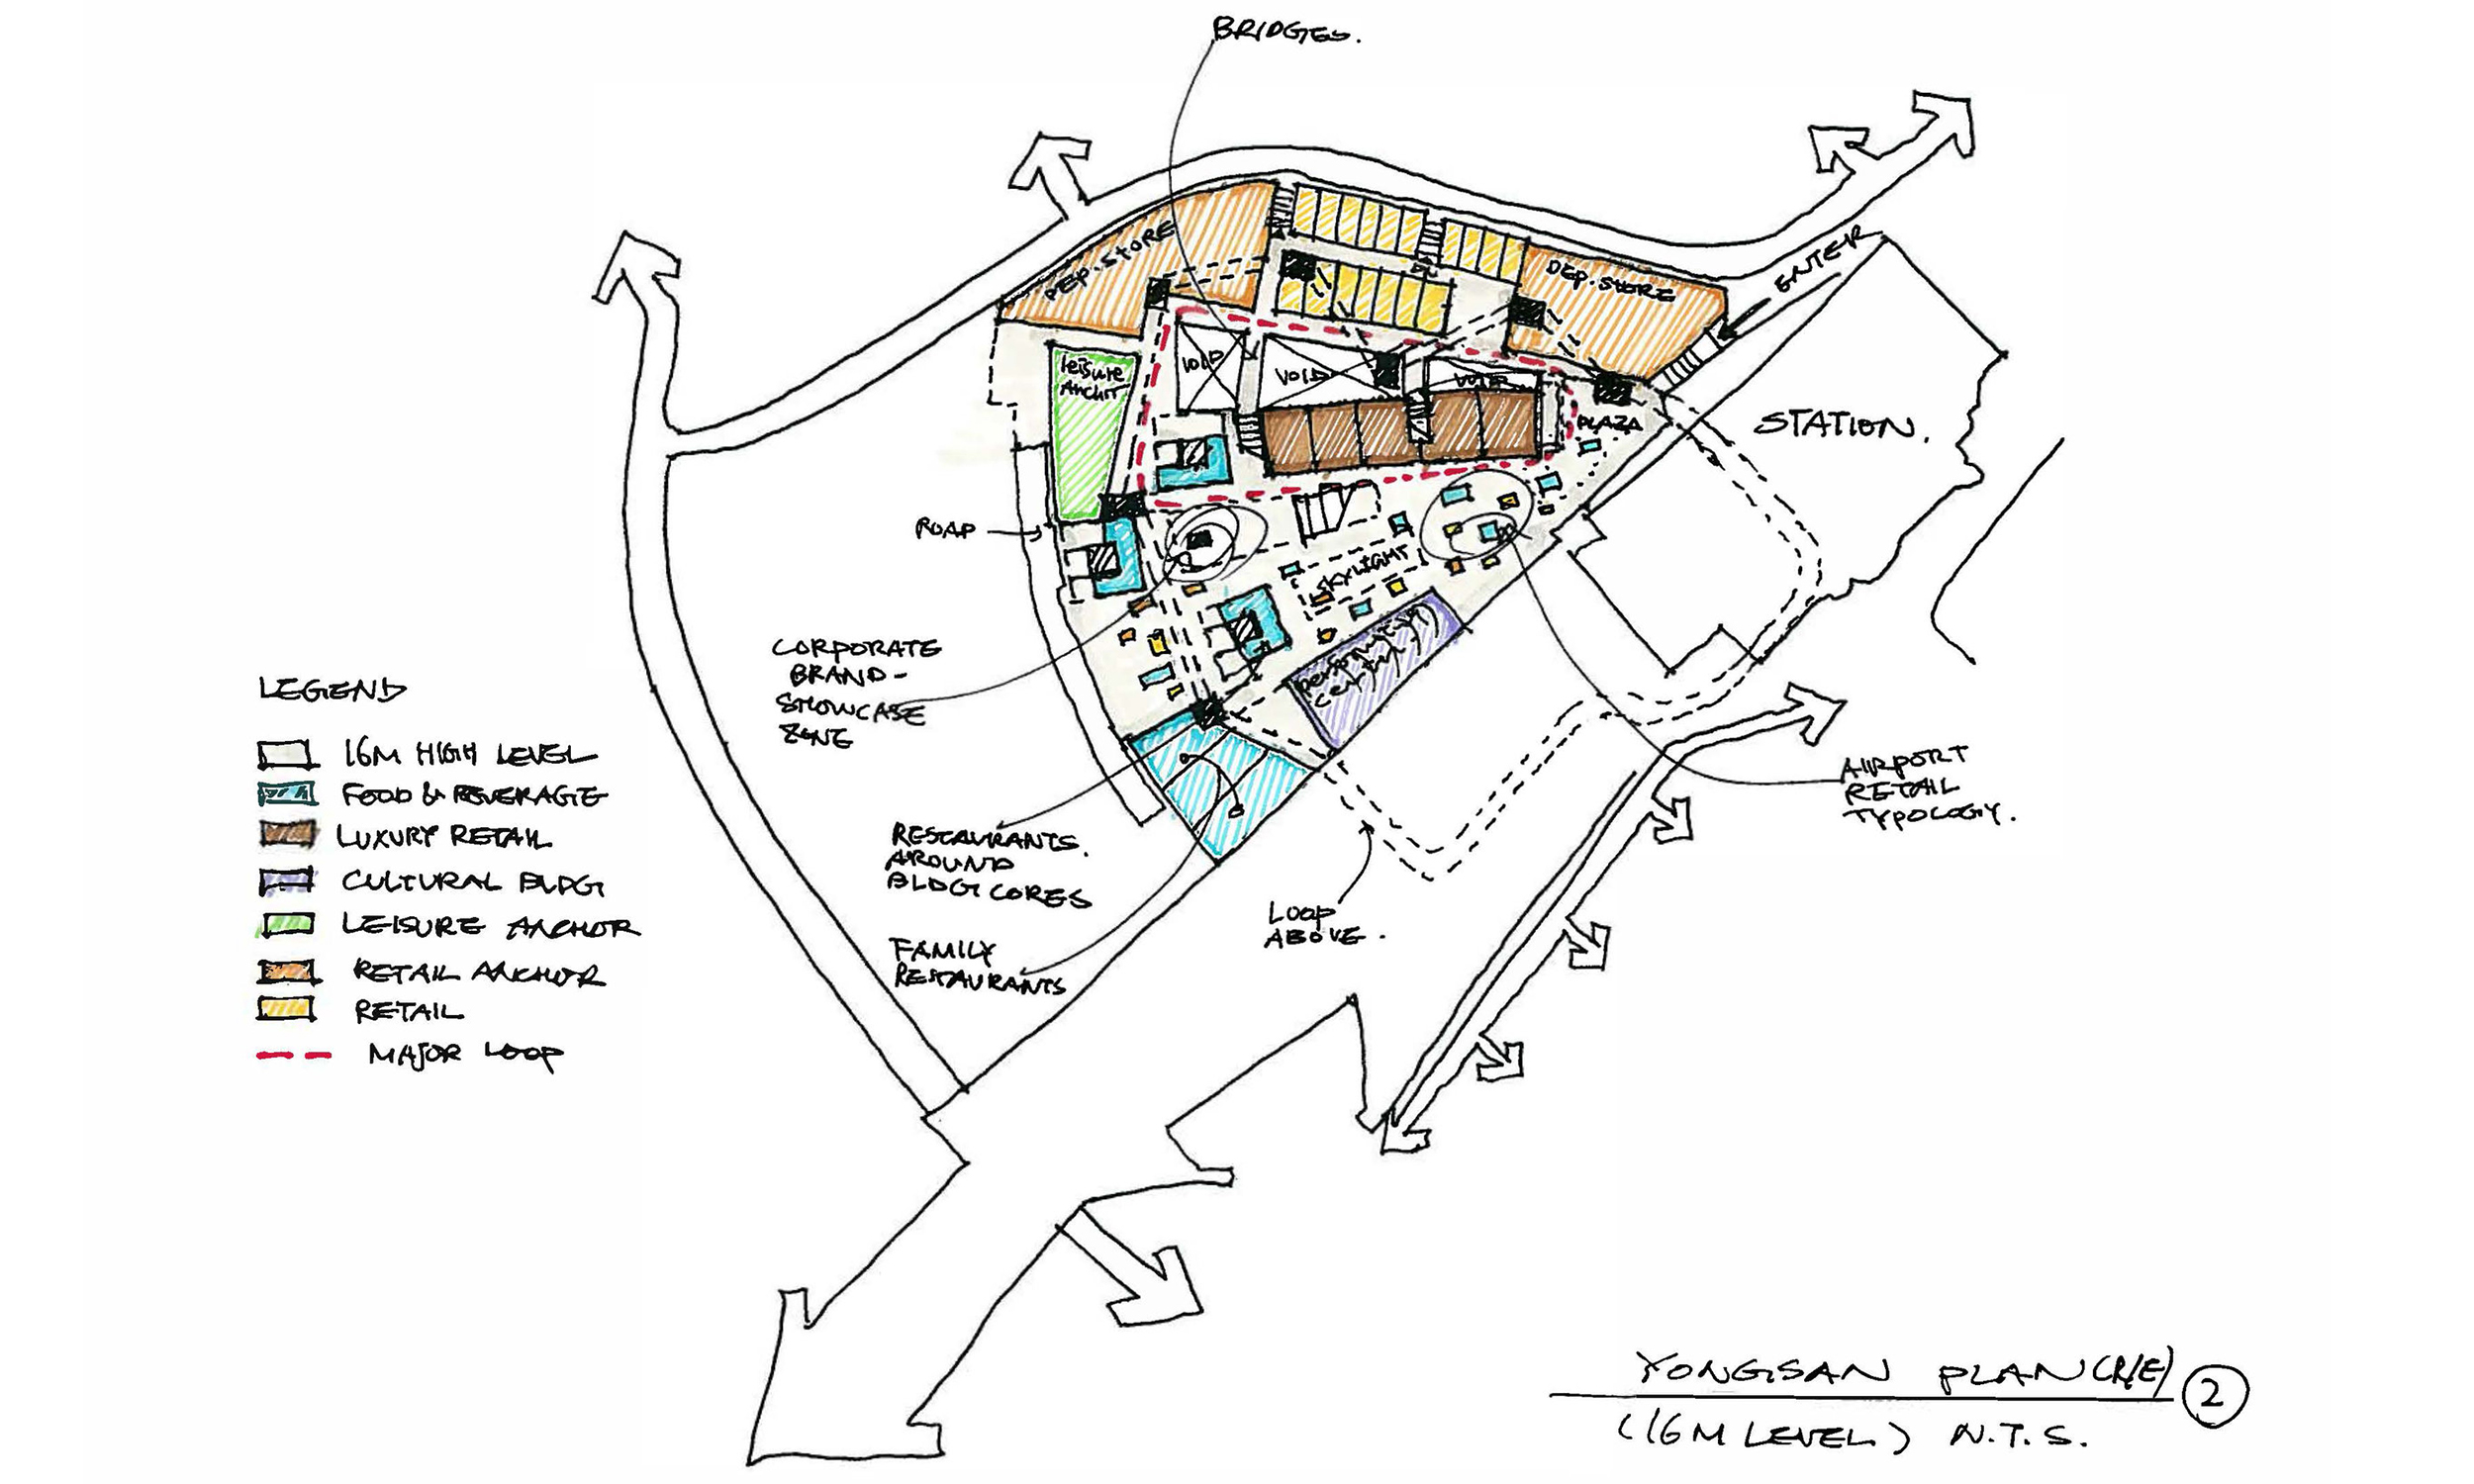 3.+Gensler_Retail_Entertain_ConceptDesign_Sketches_20070307+copy_Page_2.jpg